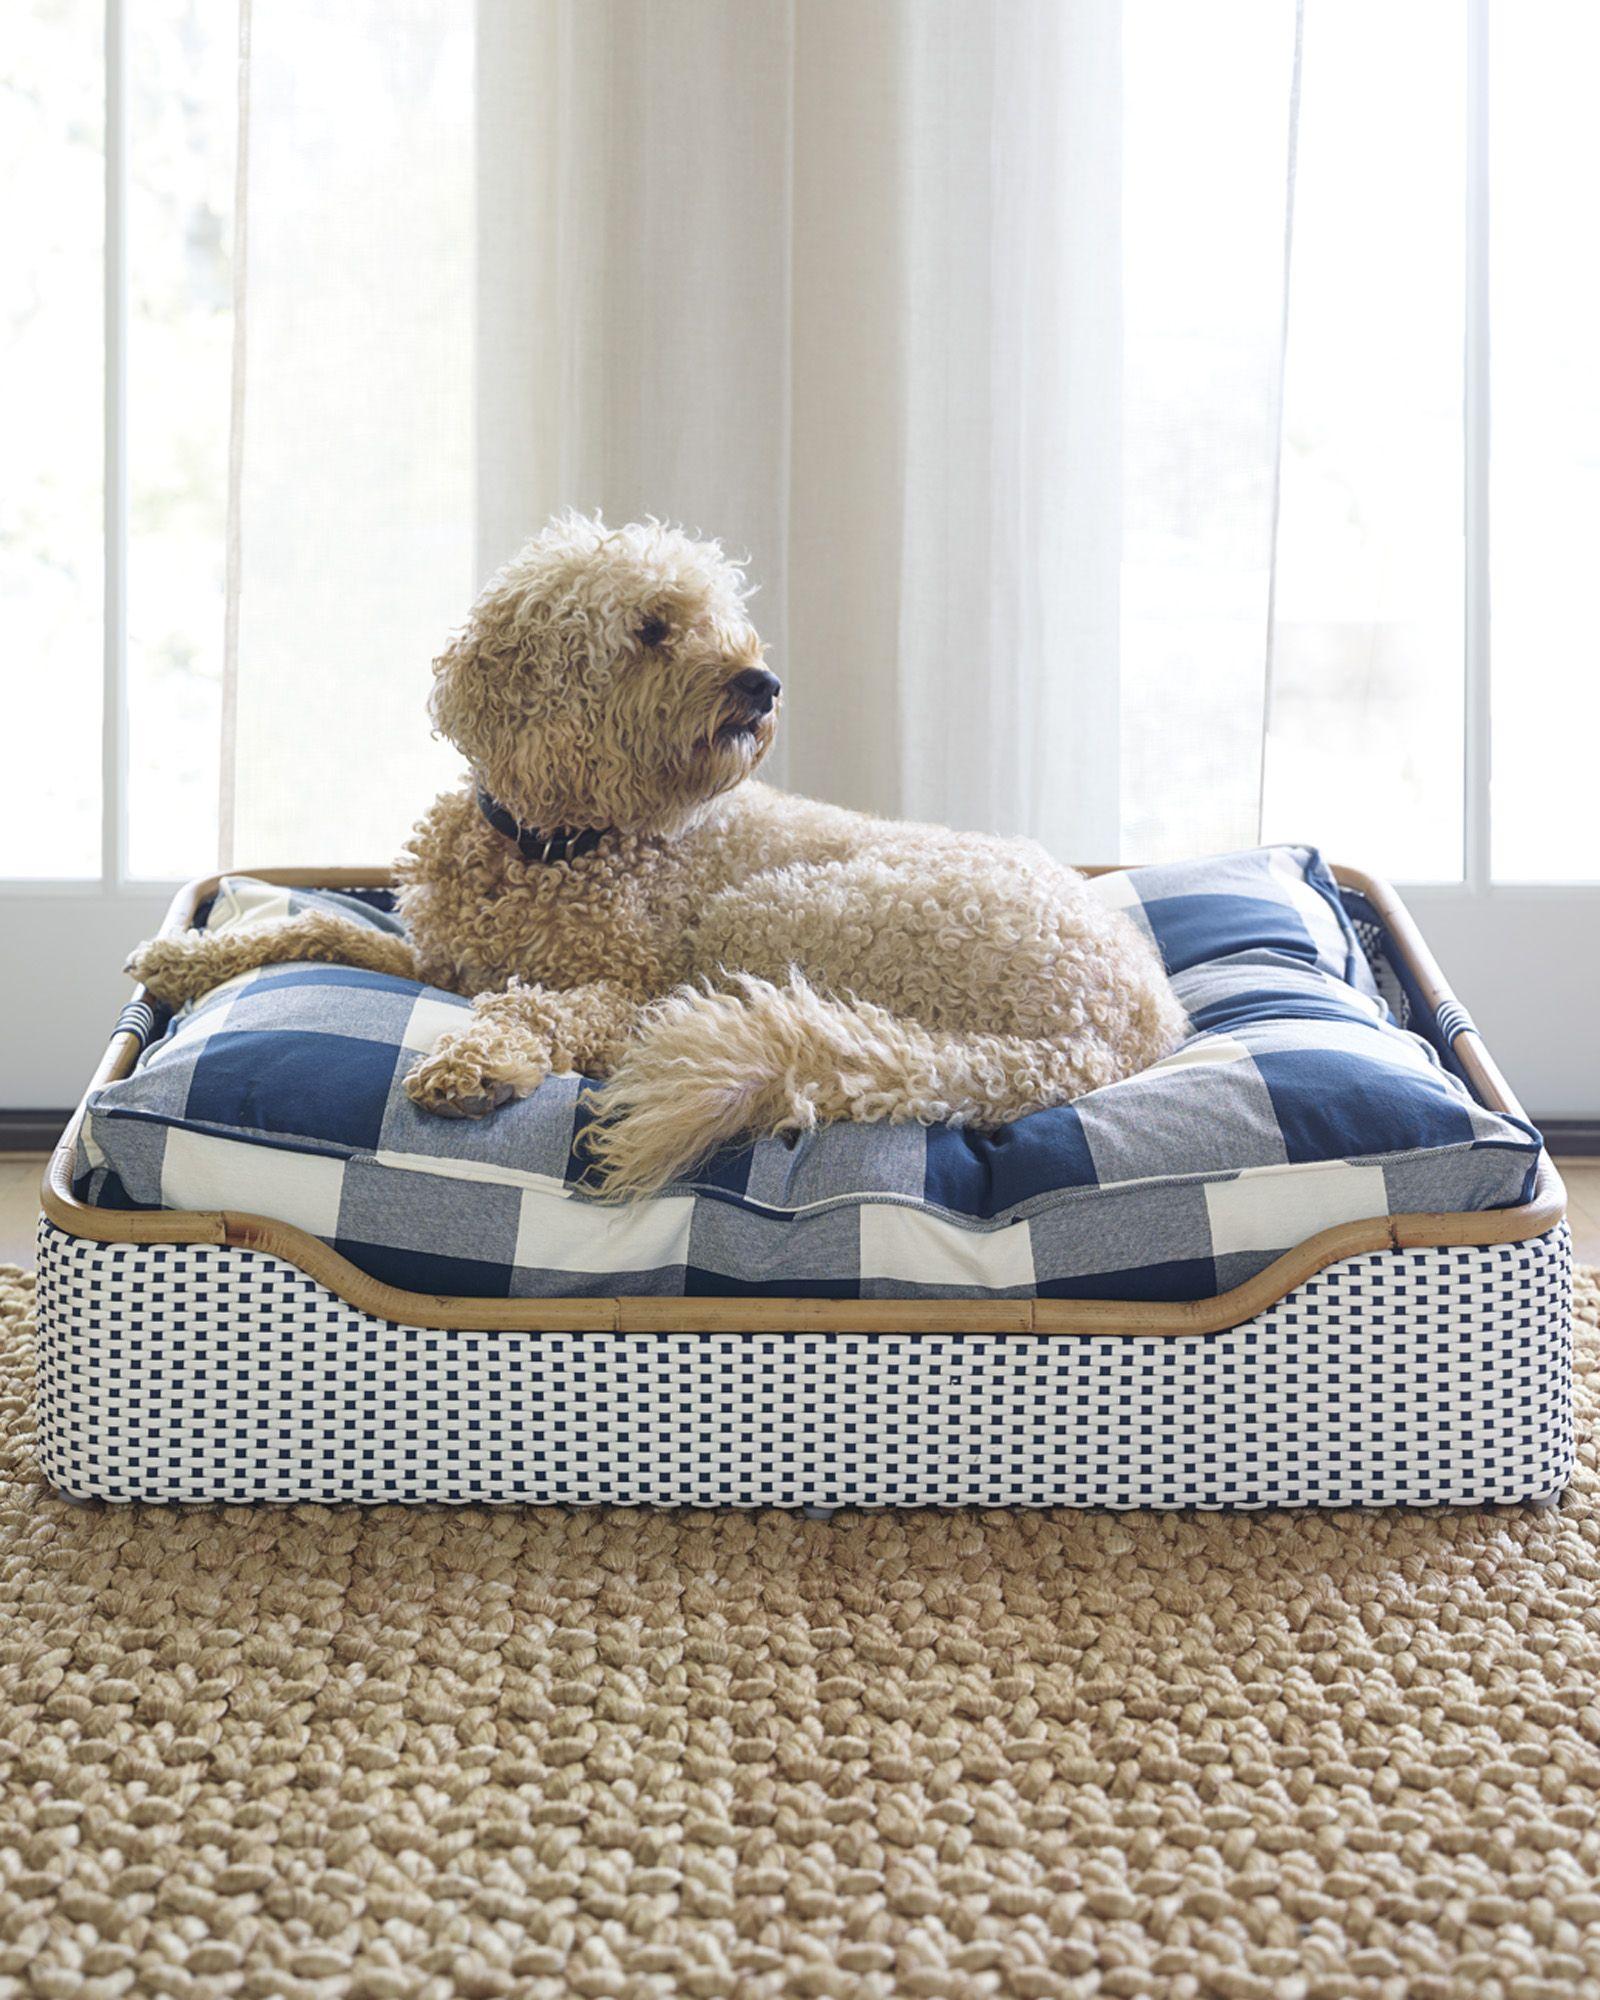 pamper your pup with our stylish new dog bed  riviera dog bed via  - pamper your pup with our stylish new dog bed  riviera dog bed via serena